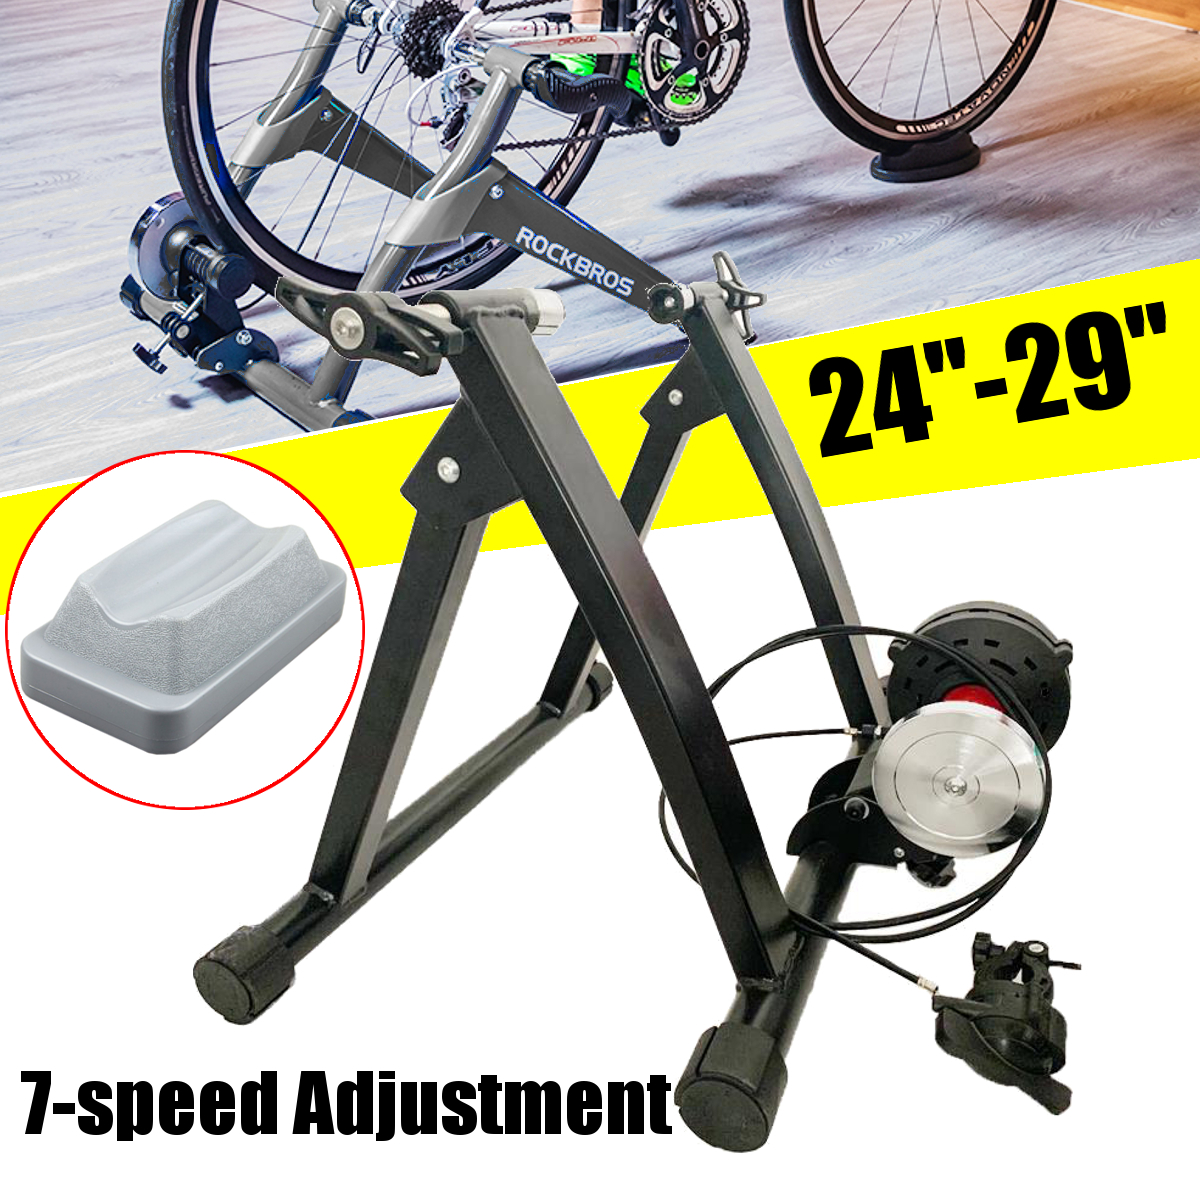 24-29 Inch Indoor Bicycle Bike Turbo Trainer Exercise Resistance Fitness Stand